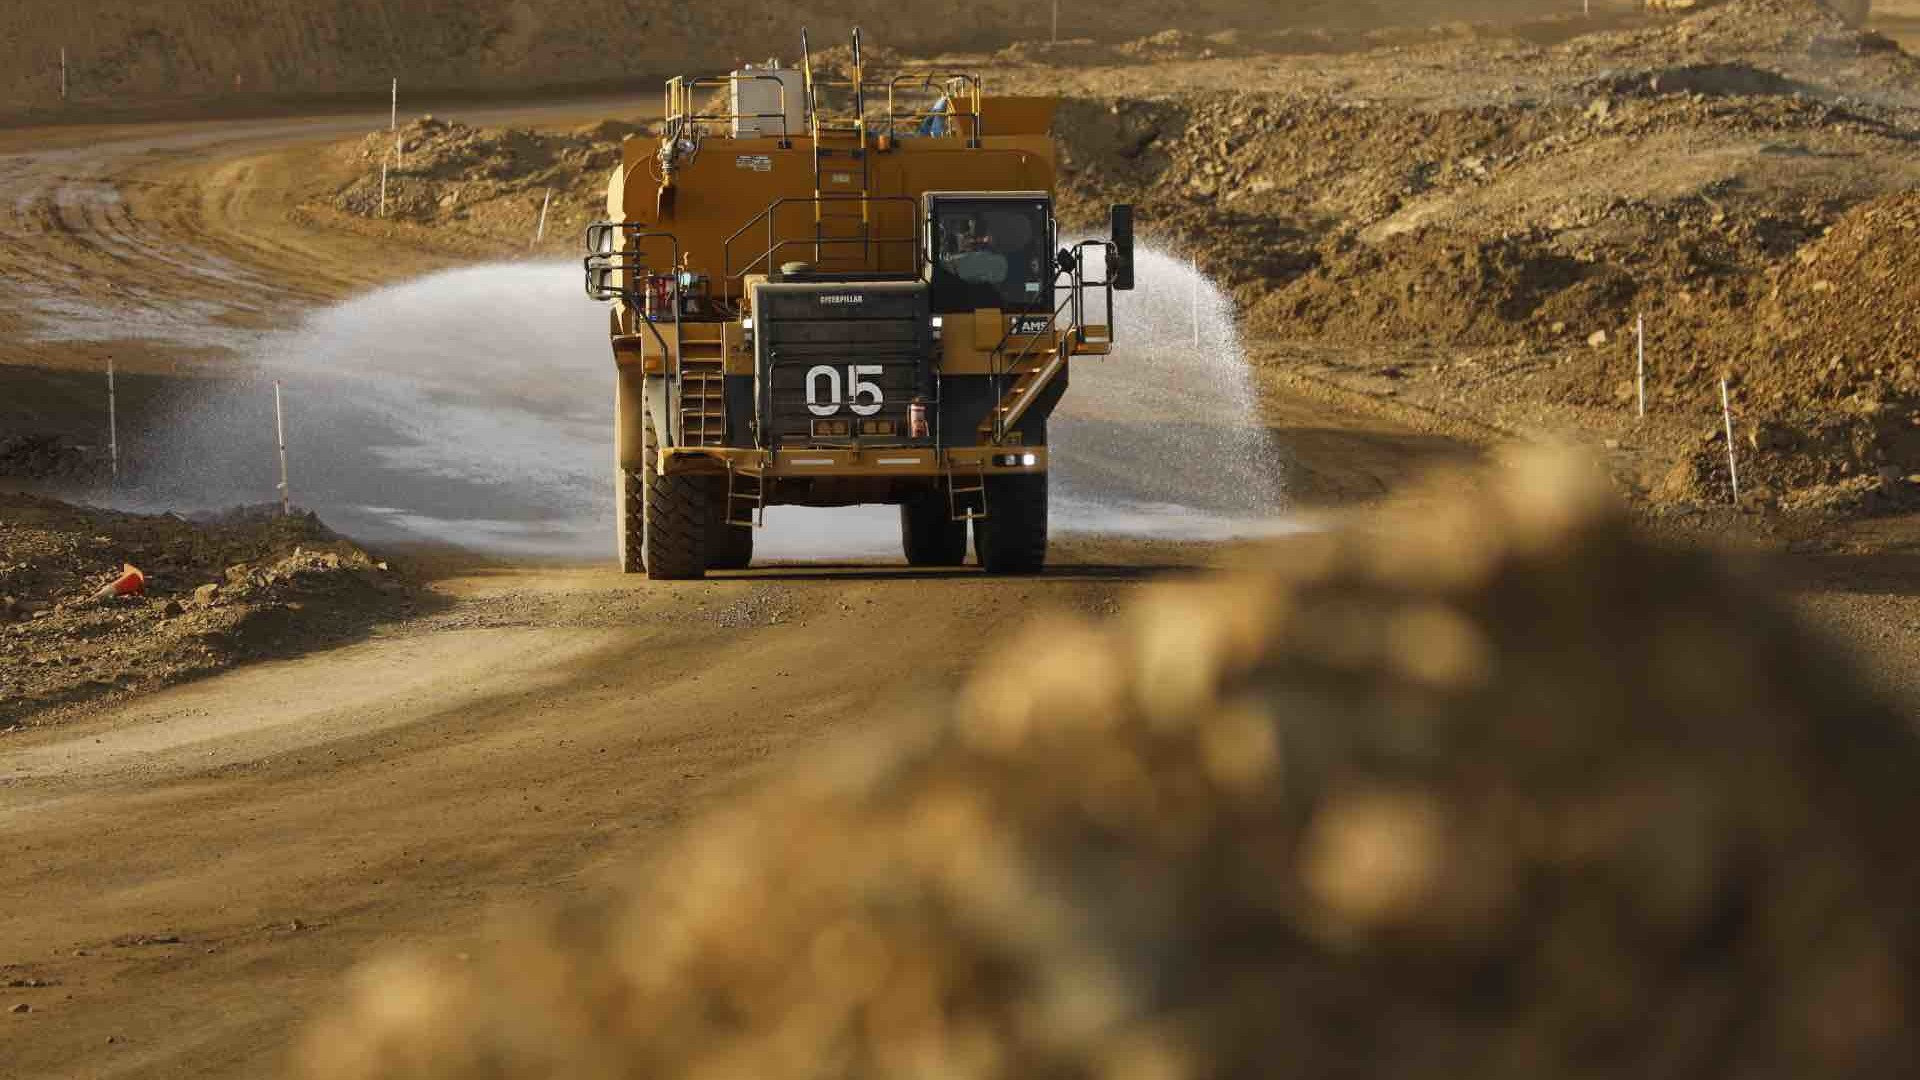 global-road-technology-dust-suppressants-industry-expert-perspectives